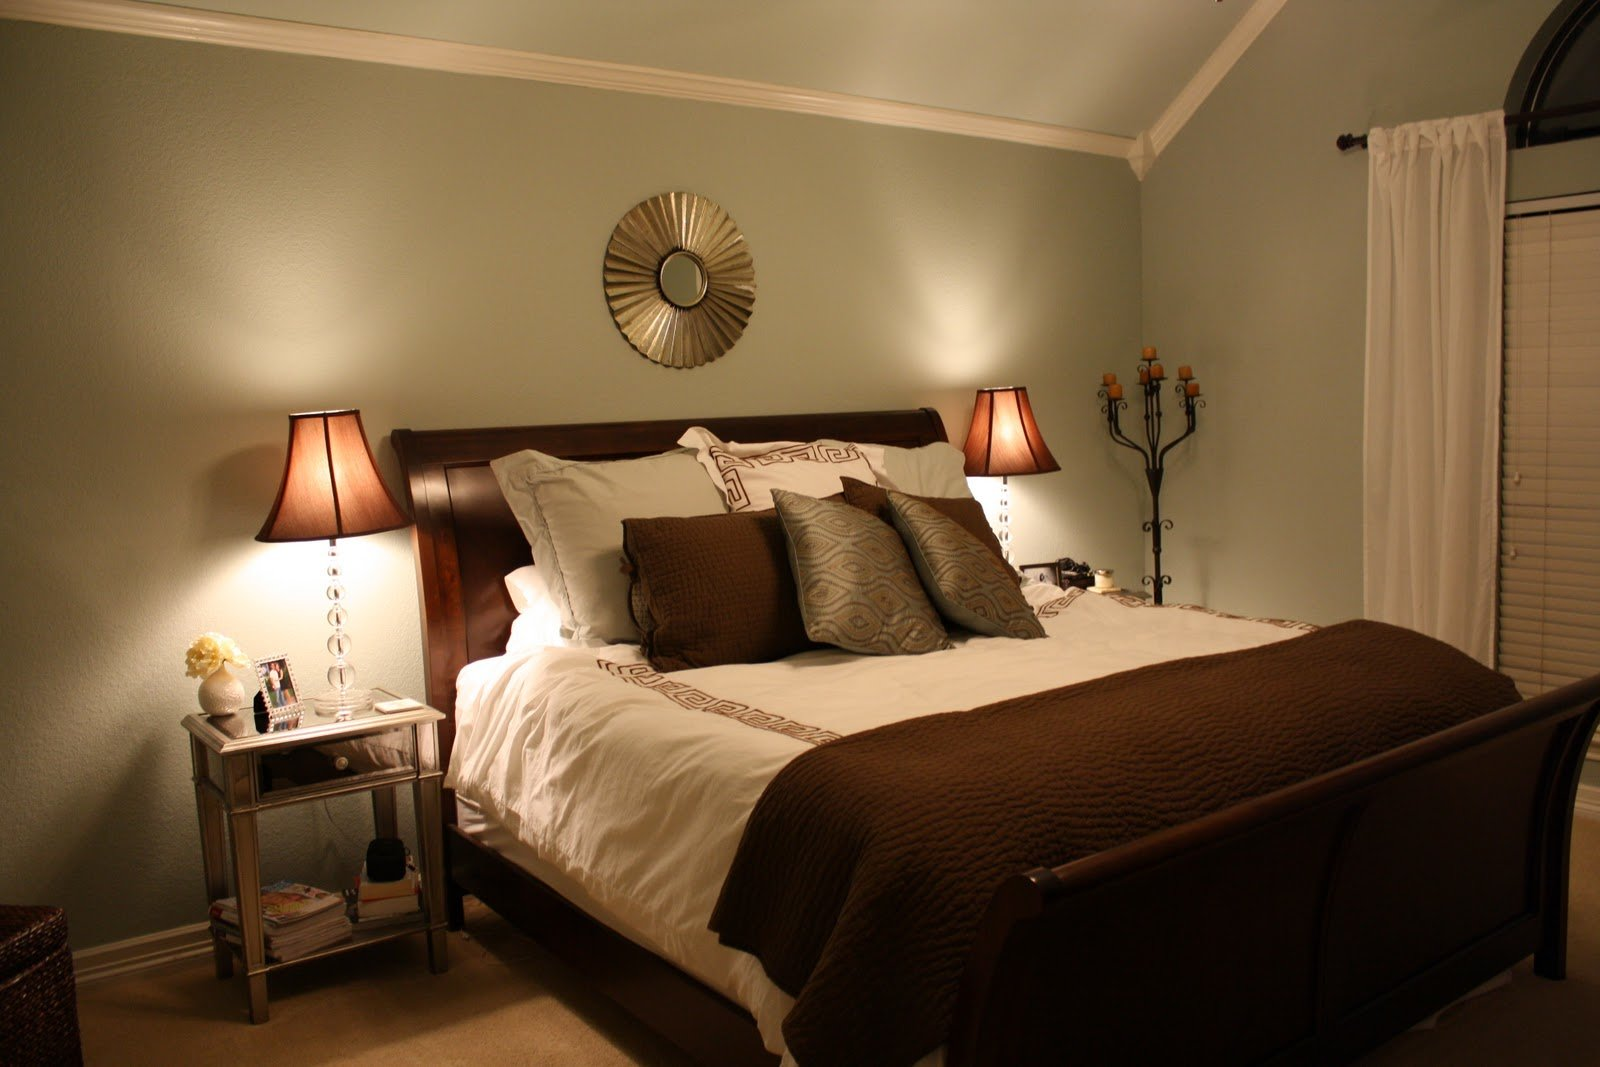 Best Bedroom Painting Ideas For Men The Interior Designs With Pictures